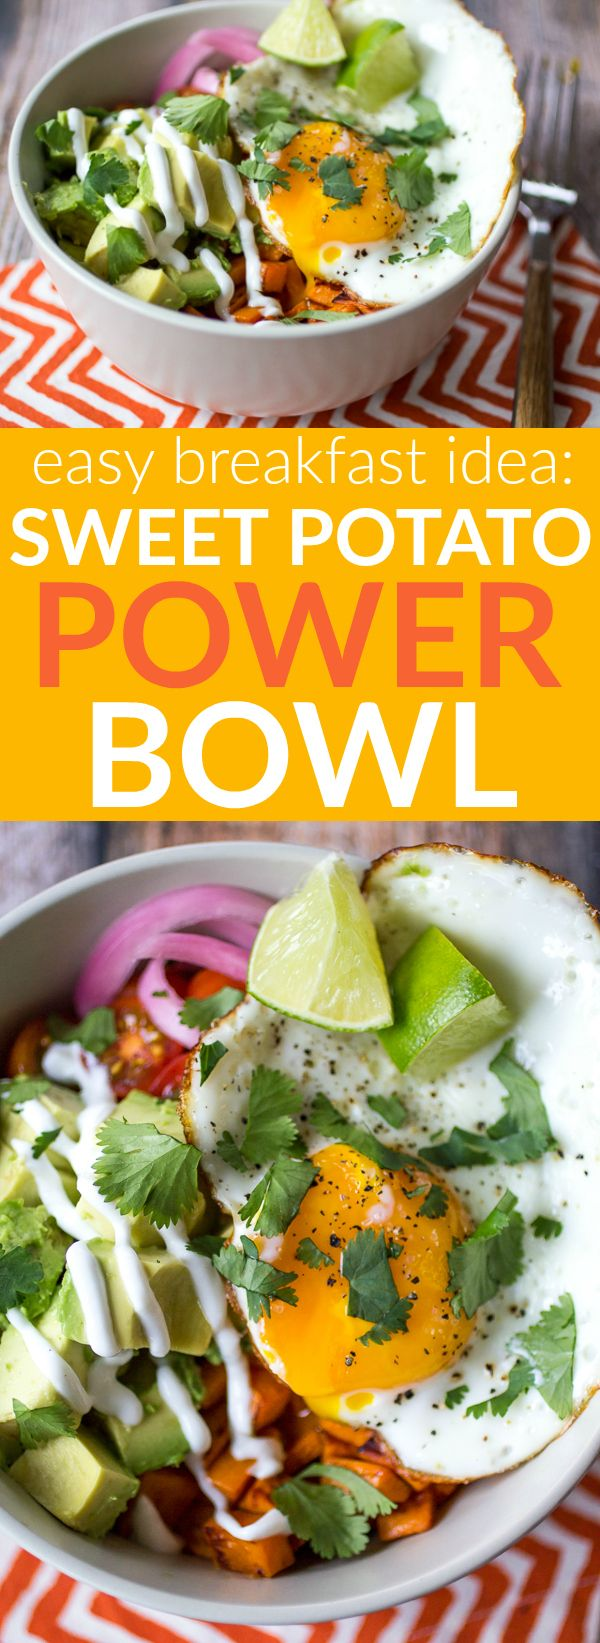 Stuck in a boring breakfast rut? Take 15 minutes and make this easy Sweet Potato Power Bowl! This winning combination of tender sweet potato, creamy avocado, sweet tomatoes, and perfectly poached egg will keep you full and satisfied until lunch.